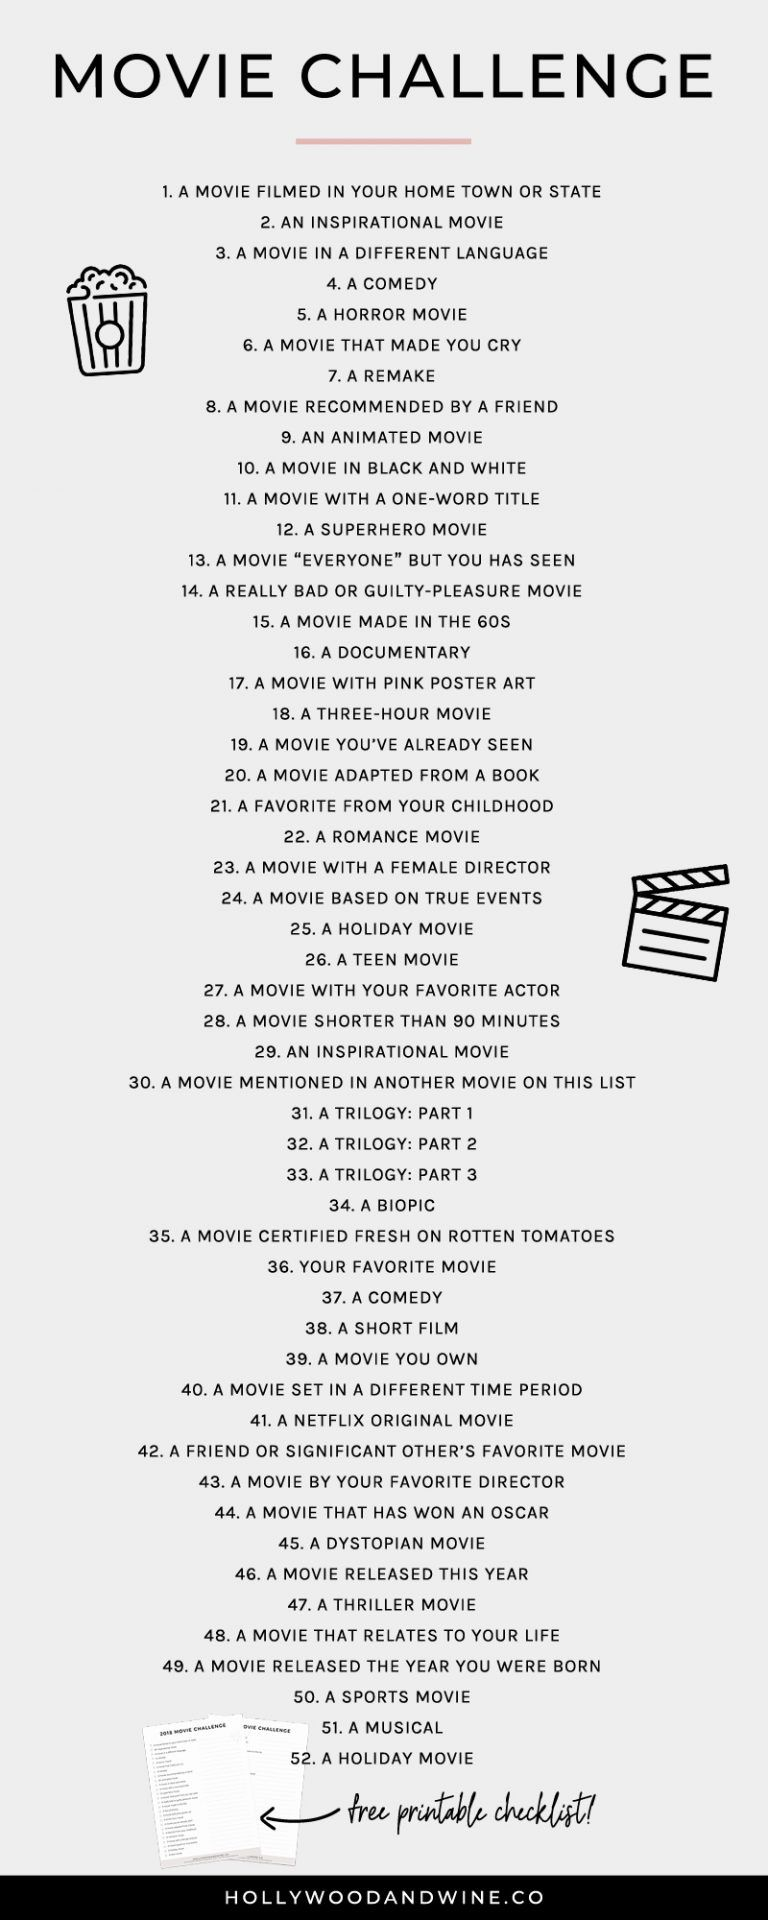 Movie Challenge (+ a free printable checklist!) - Hollywood & Wine